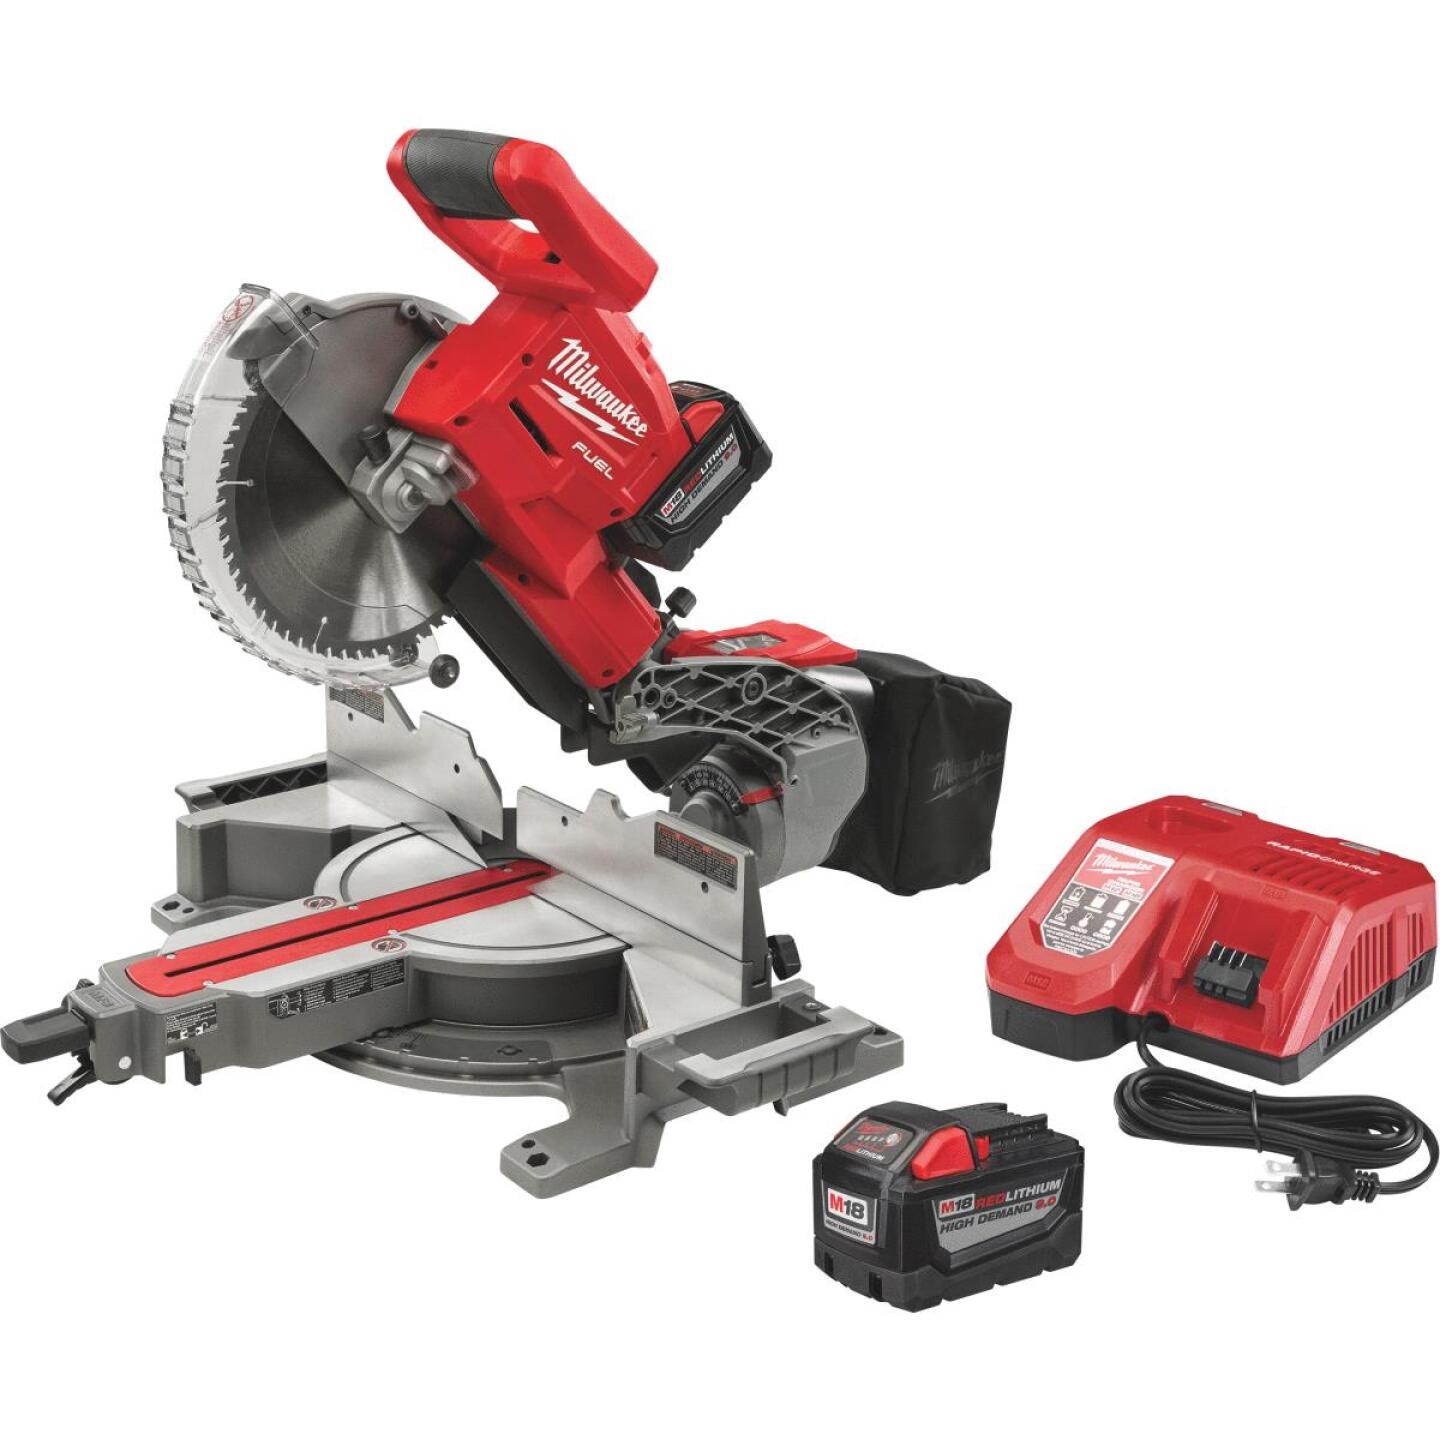 Milwaukee M18 FUEL 18-Volt Lithium-Ion Brushless Dual-Bevel Sliding Compound Cordless Miter Saw Kit Image 3